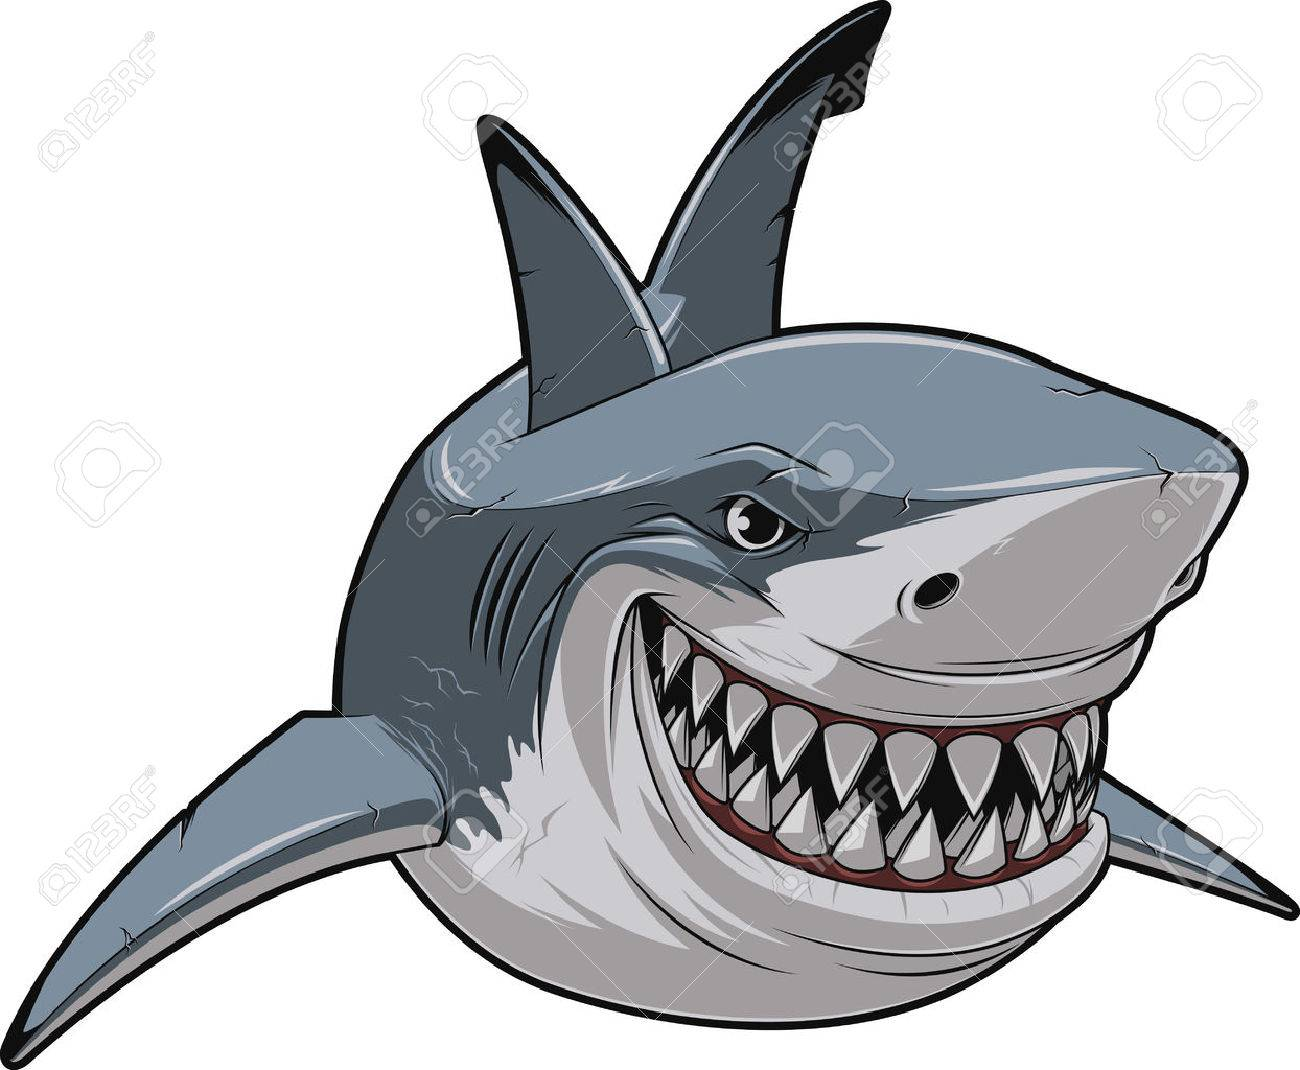 great white shark clipart at getdrawings com free for personal use rh getdrawings com great white shark clipart black and white great white shark clipart free